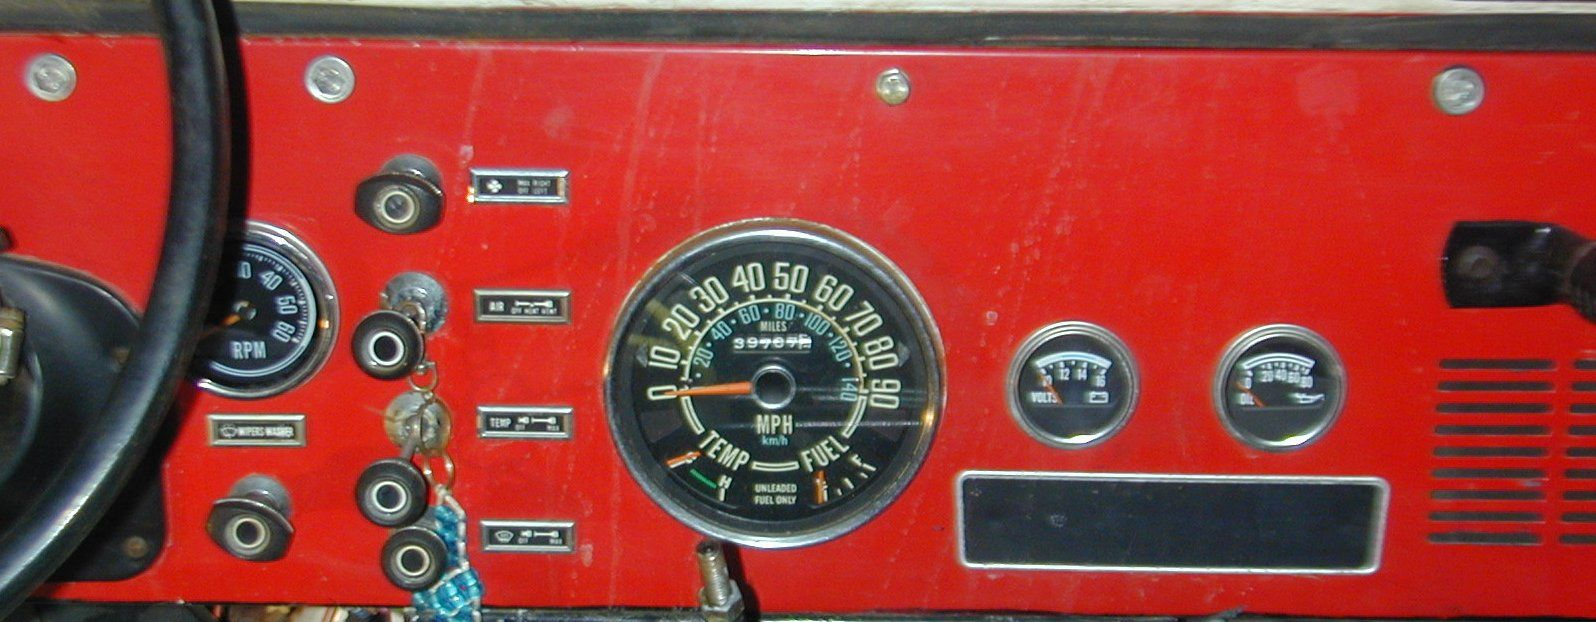 hight resolution of basic troubleshooting for cj gauges jeep cj6 jeep truck jeep wrangler jeep willys